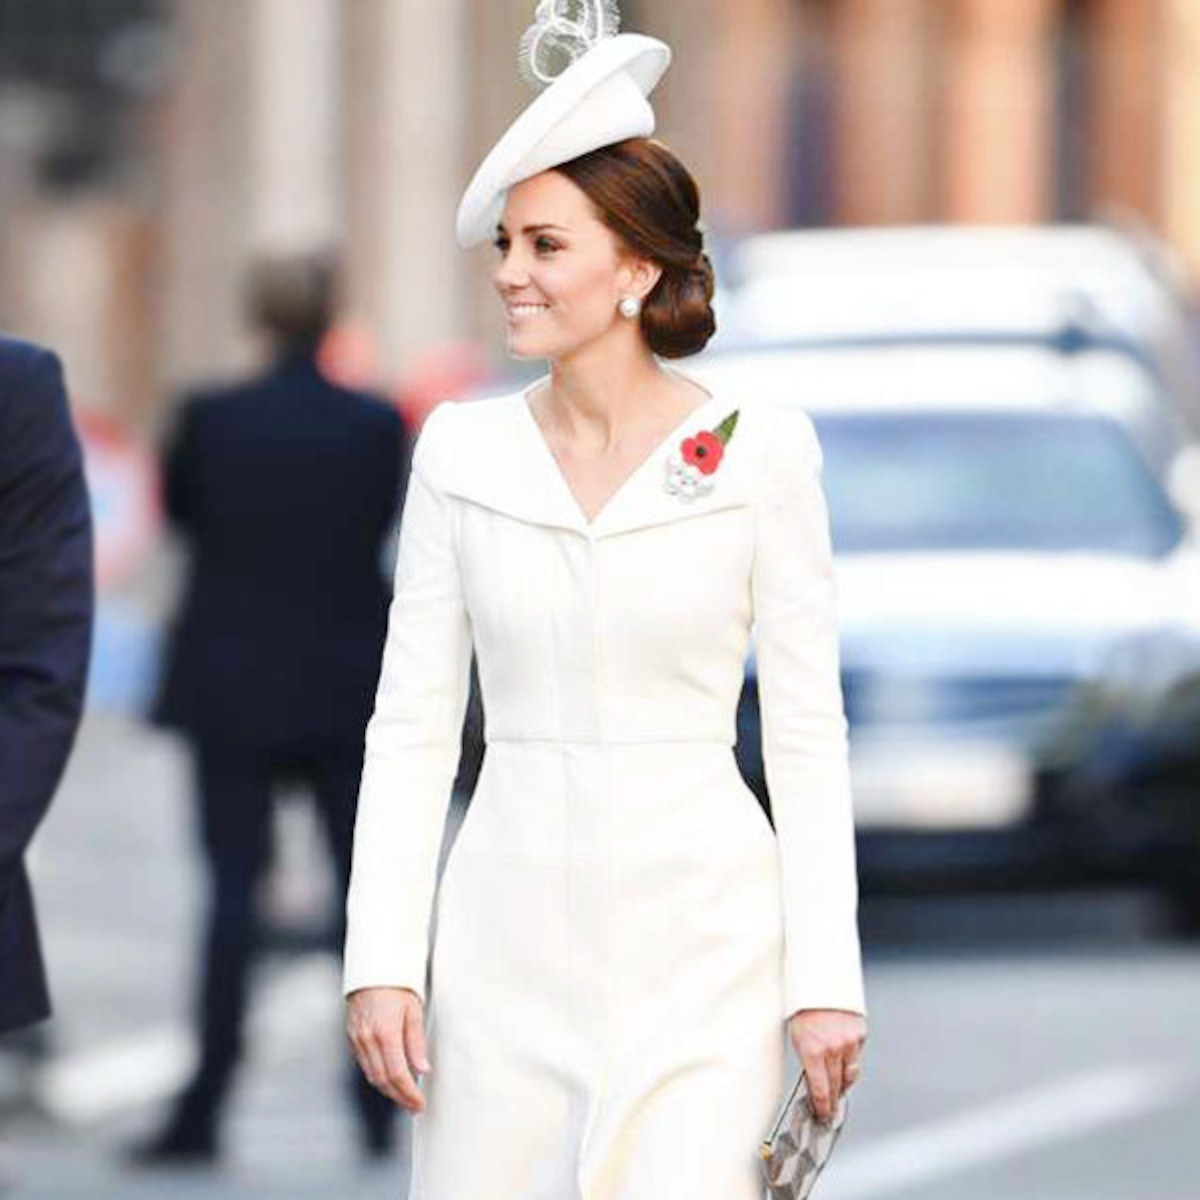 Who Does the Coat Dress Better? Kate Middleton or Melania Trump